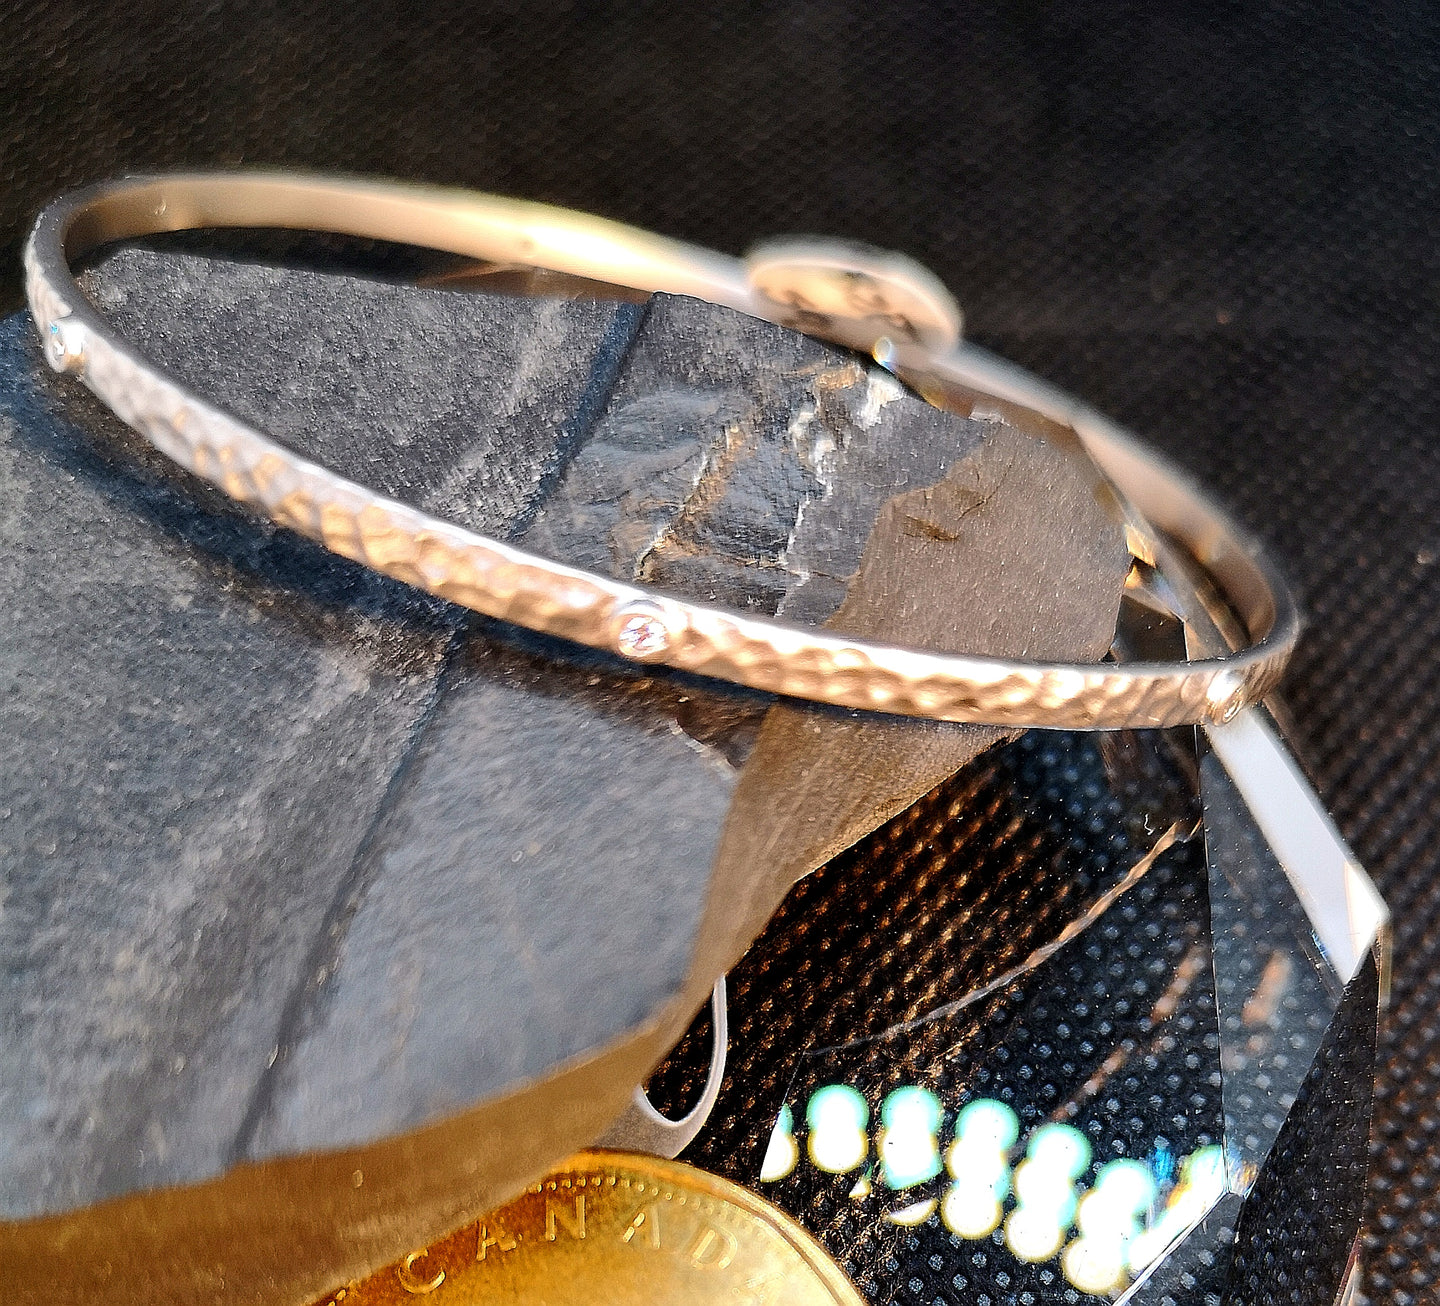 Satin finished hammered sterling silver bangle with rhodium finish and cubic